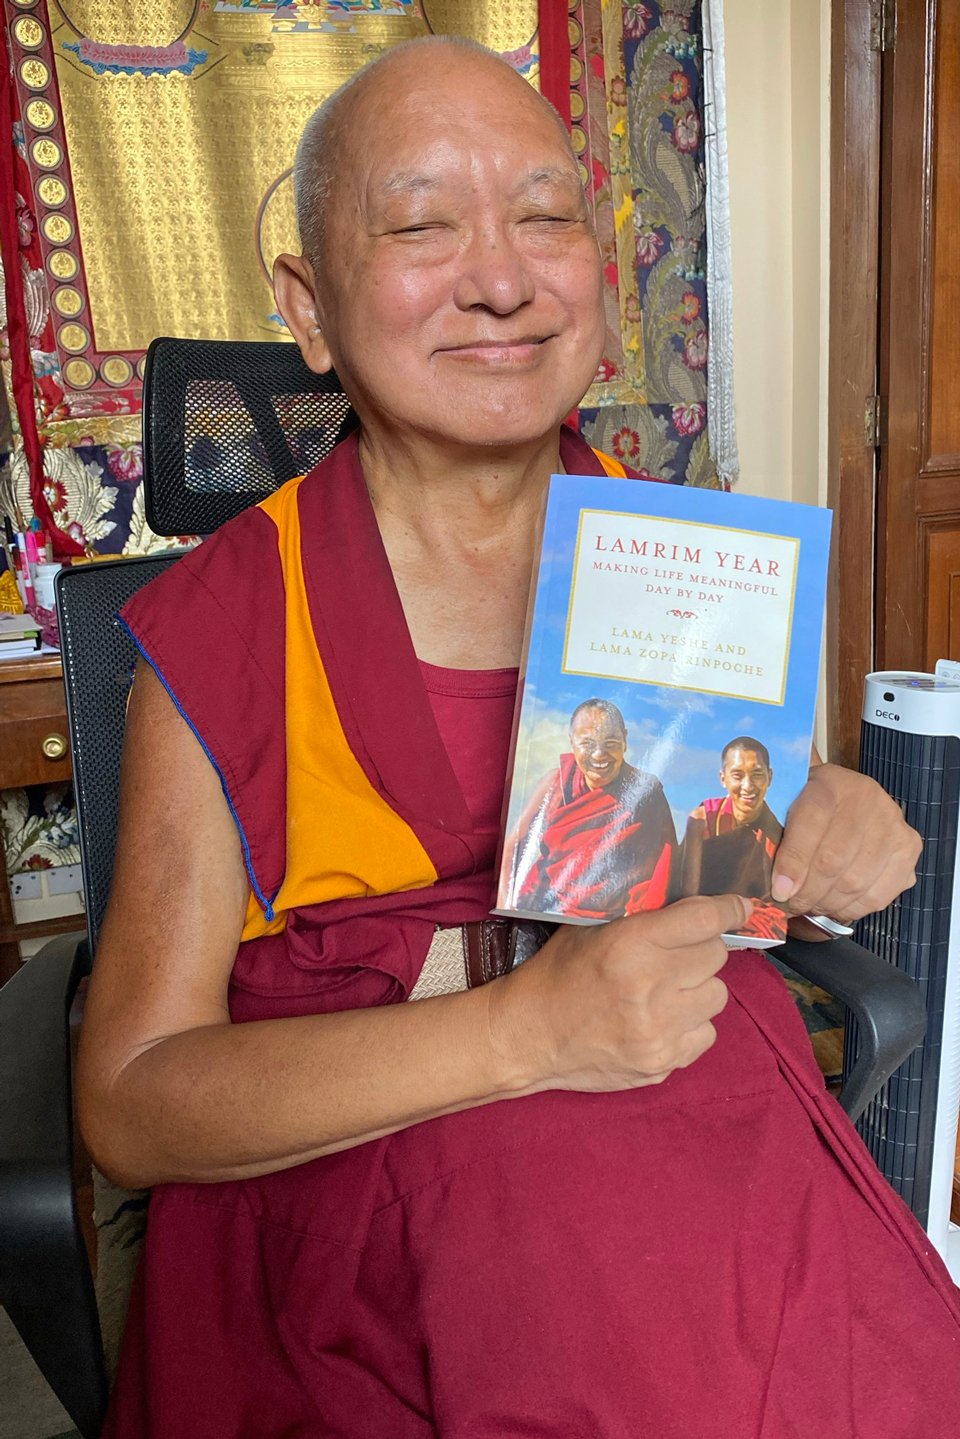 Lamrim Year: Making Life Meaningful Day By Day